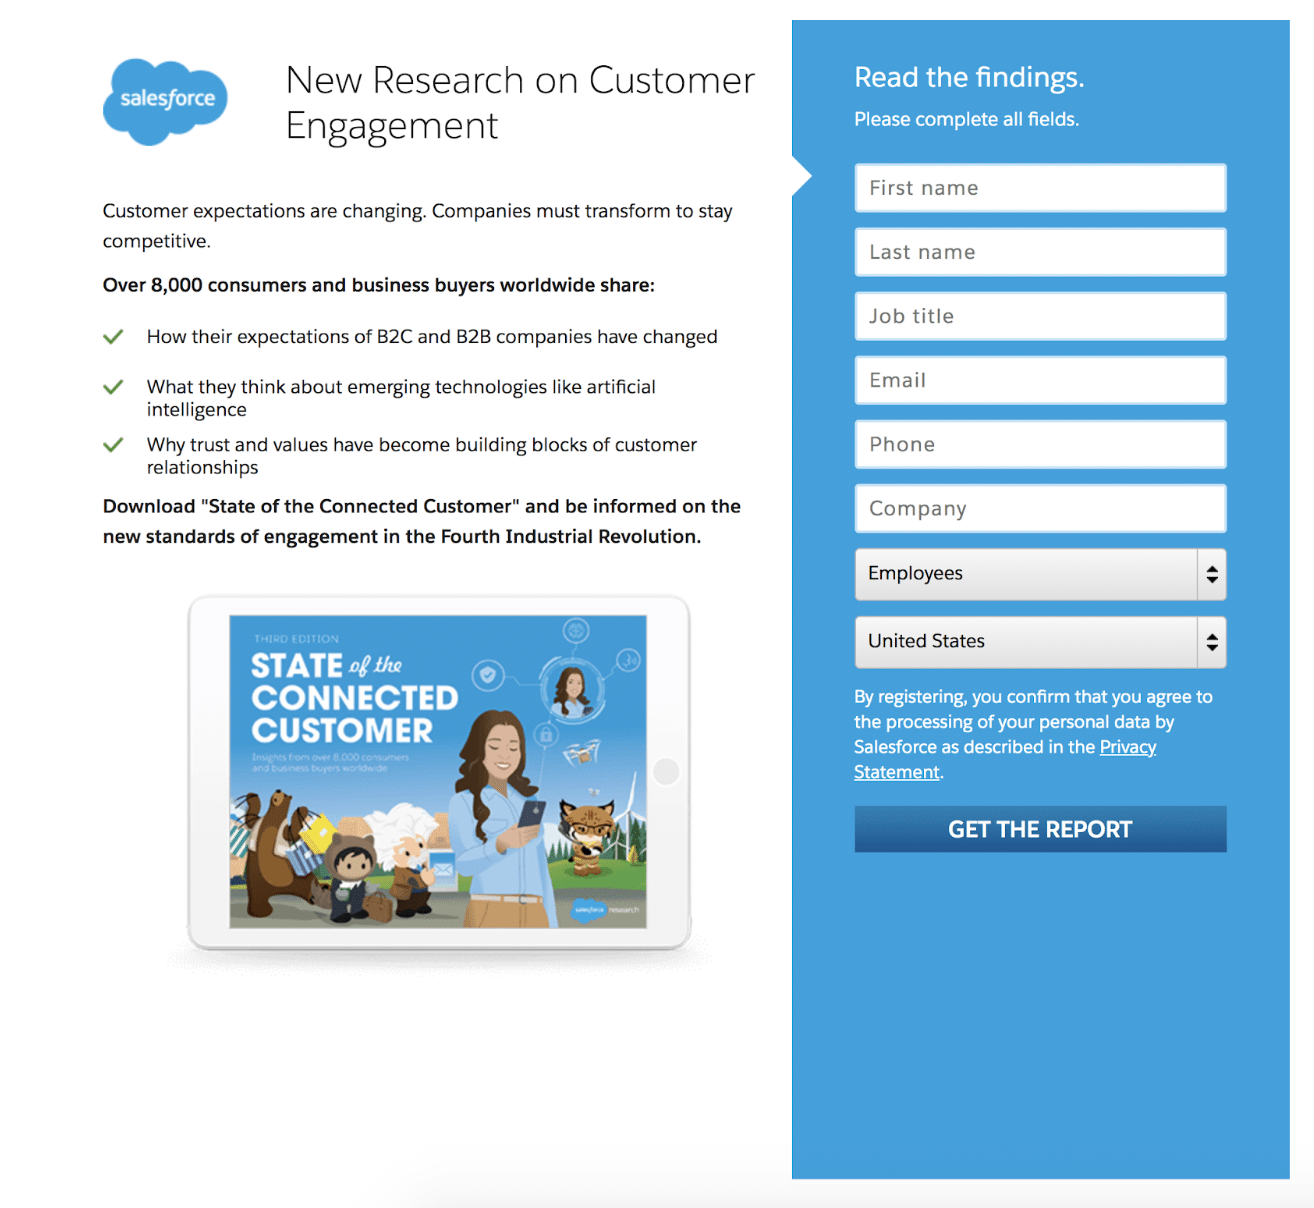 Salesforce Customer Engagement report